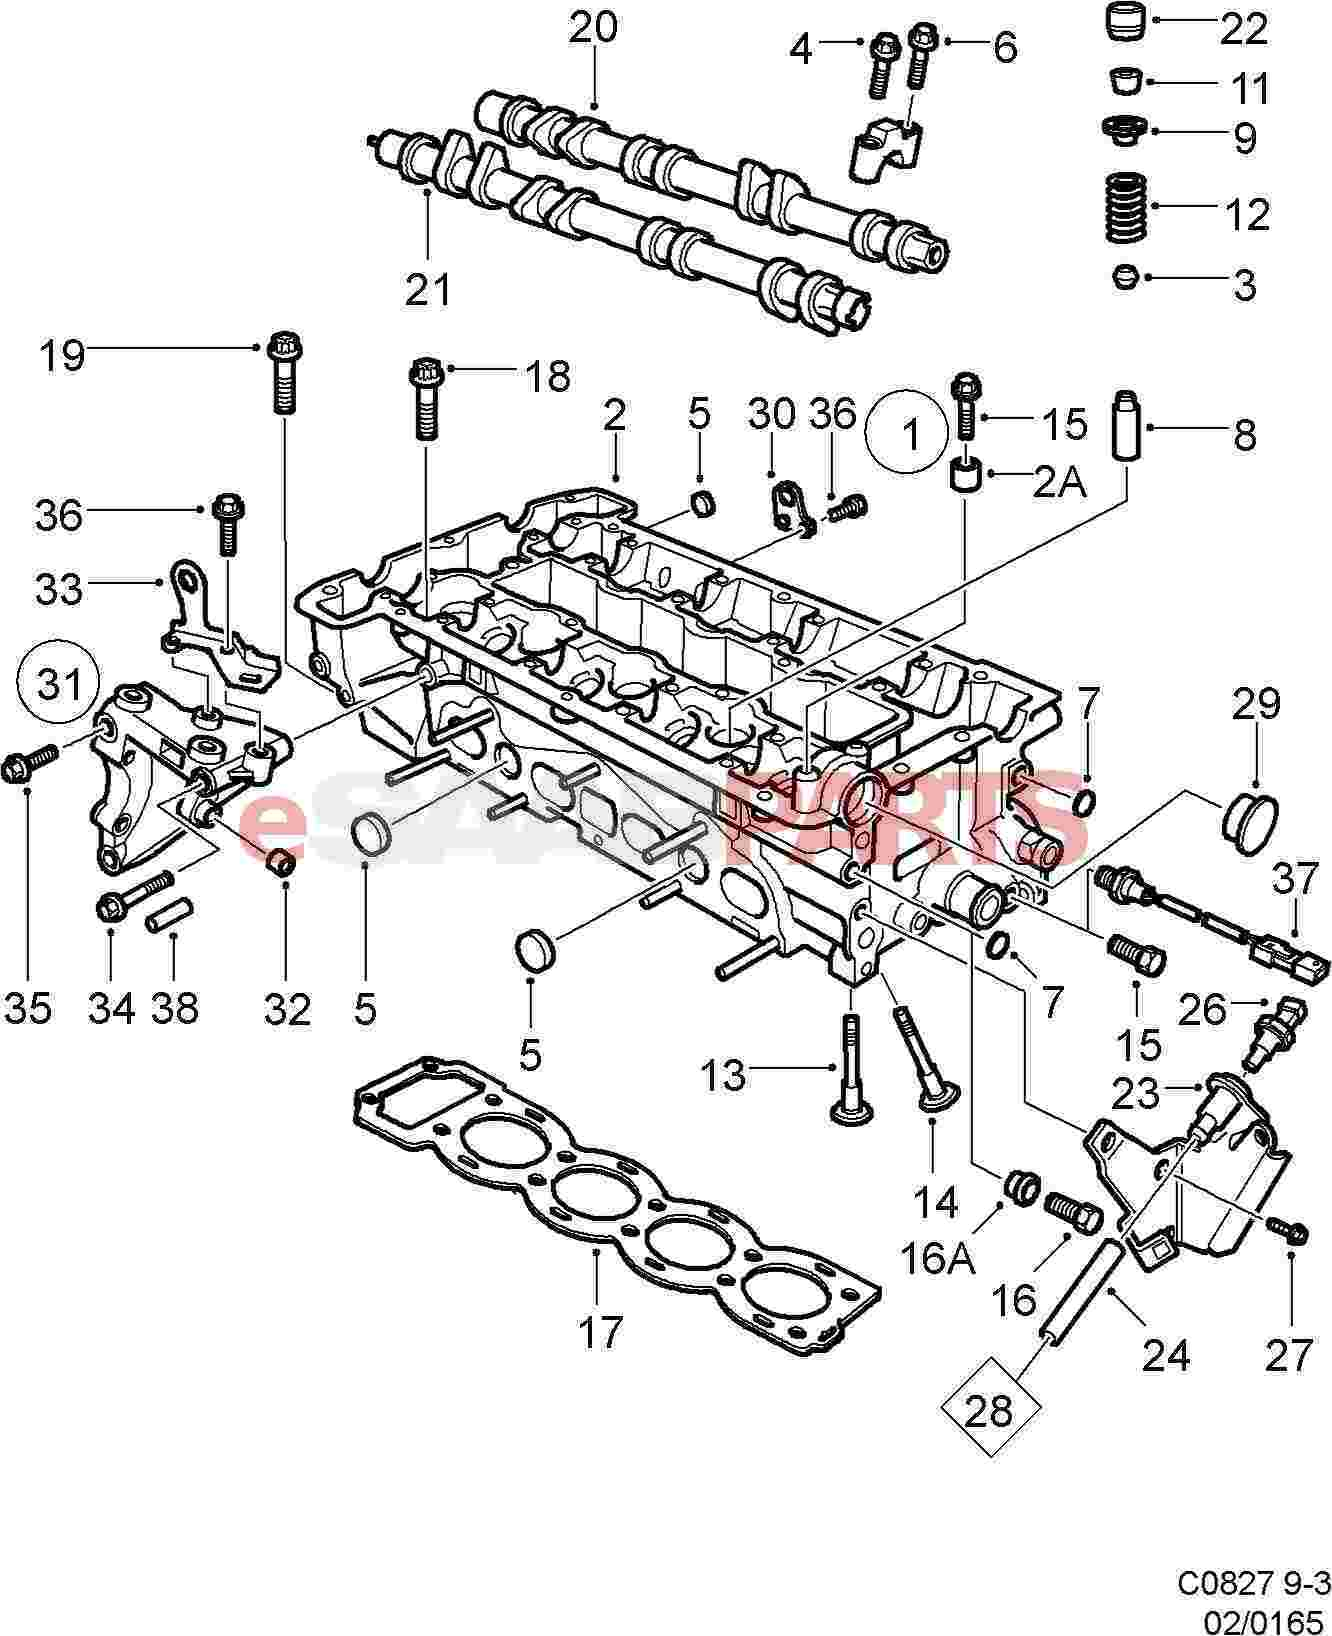 esaabparts com saab 9 3 9400 > engine parts > cylinder head esaabparts com saab 9 3 9400 > engine parts > cylinder head > cylinder head b205 b235